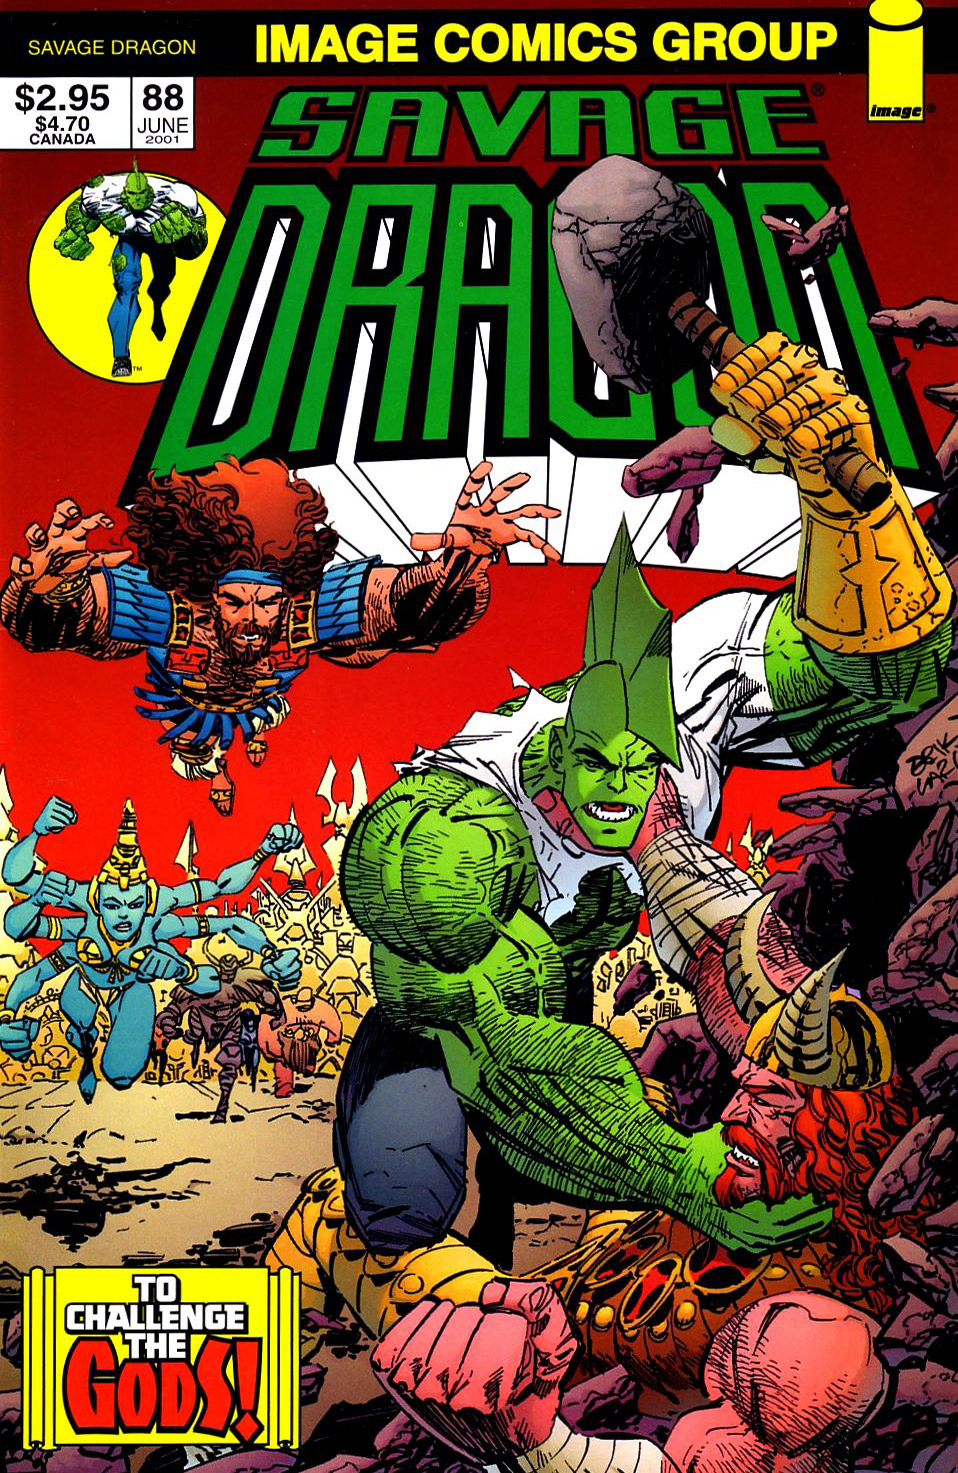 Cover Savage Dragon Vol.2 #88